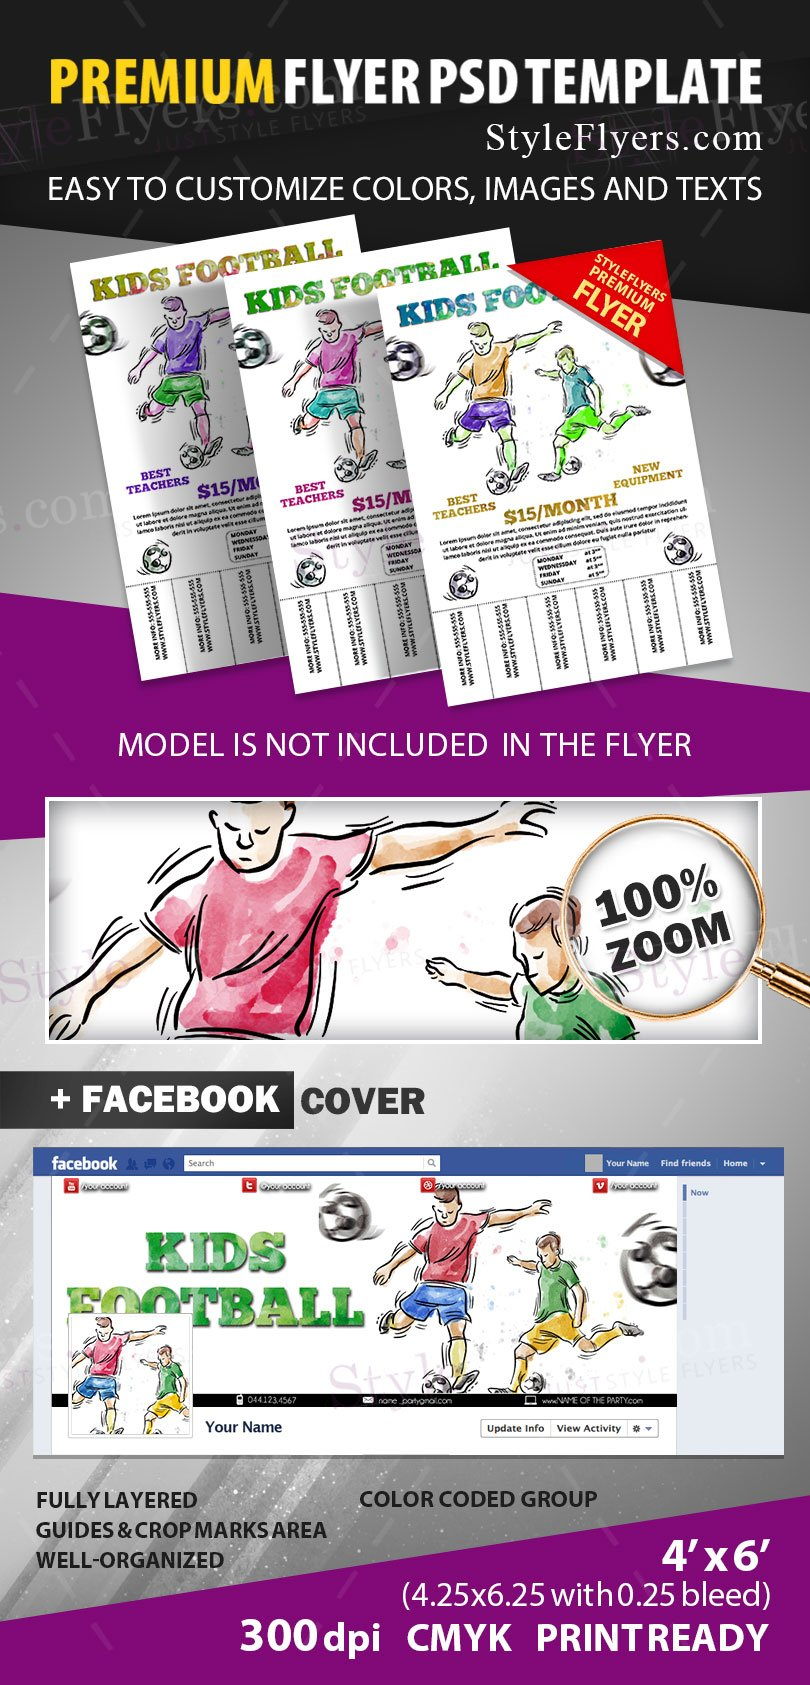 20 Business Flyer Templates (Word & PSD)